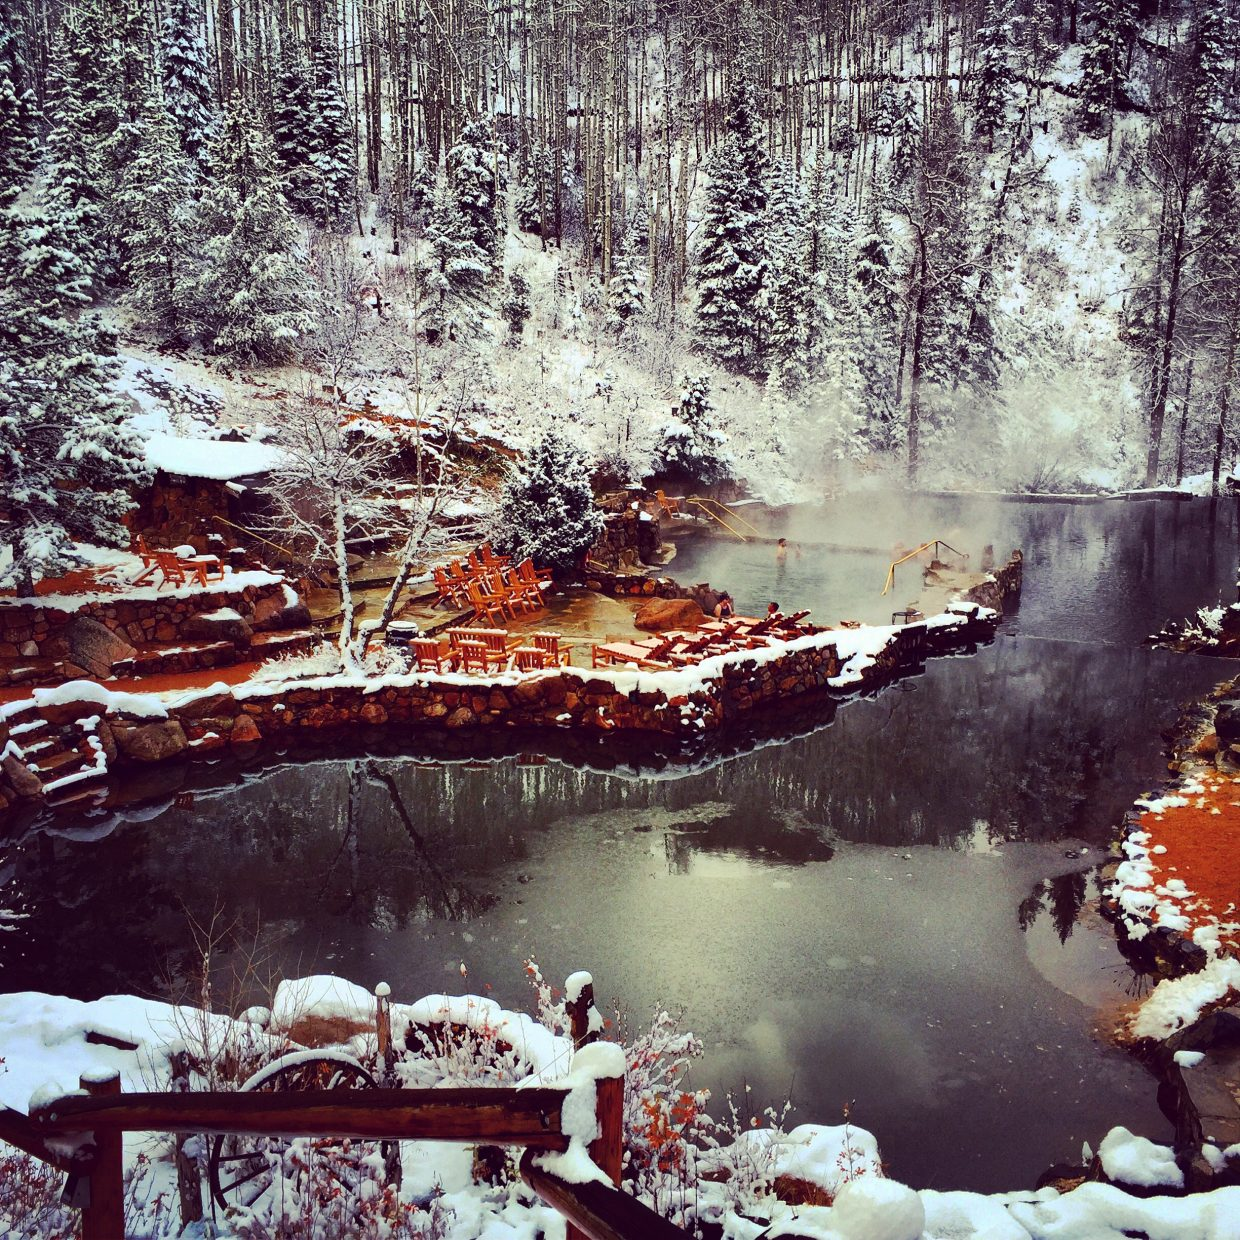 Fun times at Strawberry Hot Springs. Submitted by Jessica Scroble.